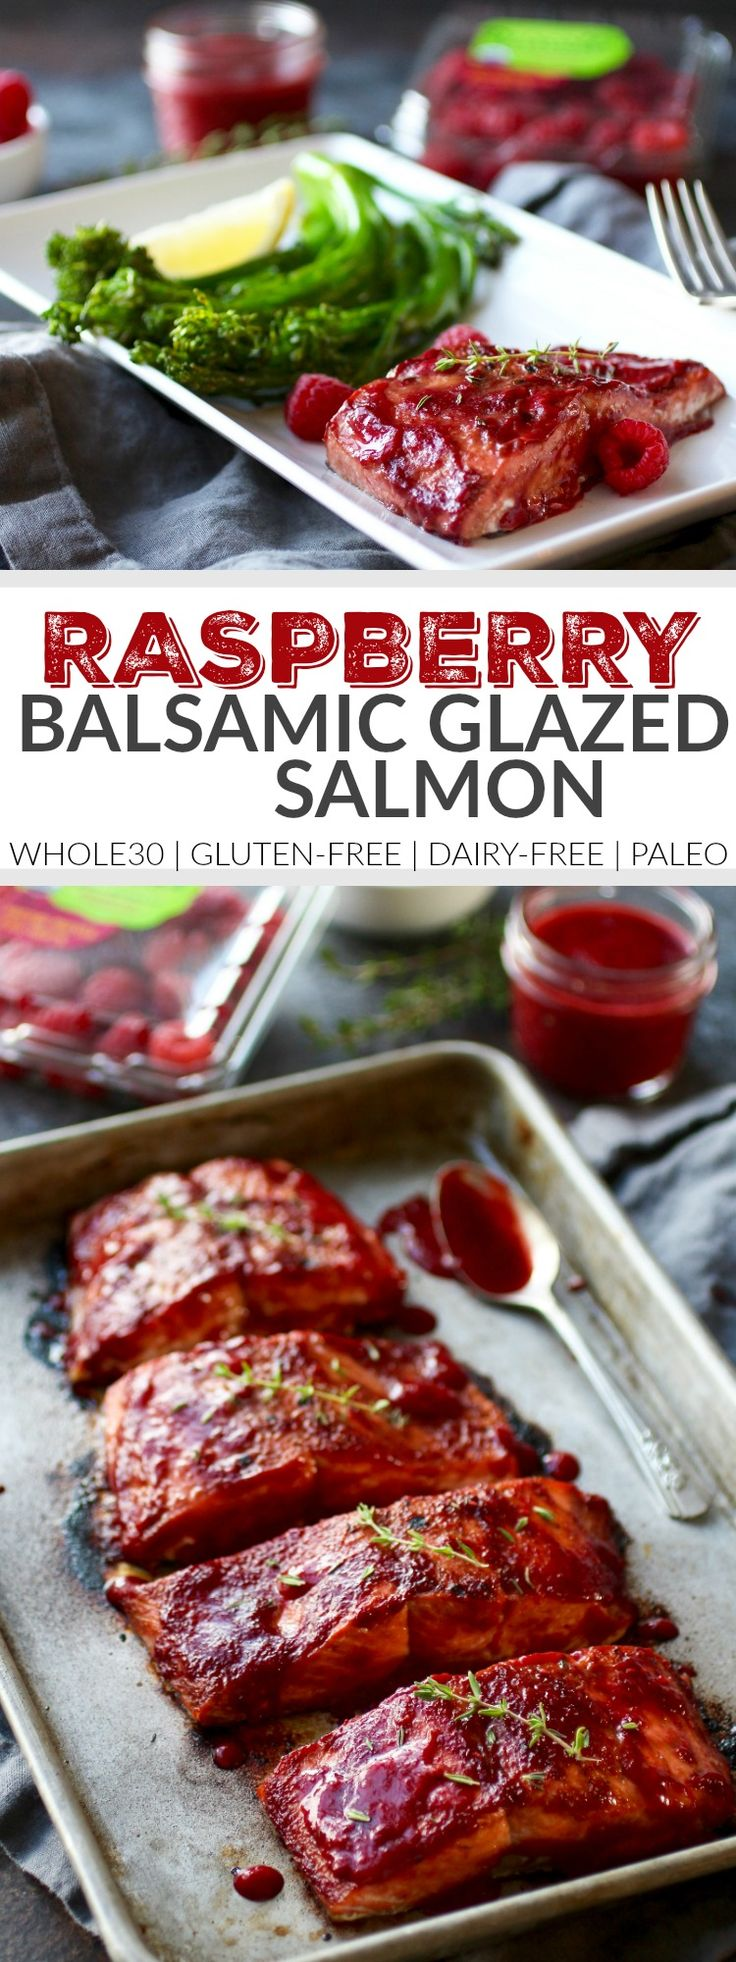 Raspberry Balsamic Glazed Salmon (Whole30) | healthy salmon recipes | Whole30 approved recipes | Whole30 approved dinners | gluten free dinner recipes | dairy free dinner recipes | paleo dinner recipes | how to make homemade salmon | healthy seafood recipes | recipes using fresh raspberries || The Real Food Dietitians | https://therealfoodrds.com/raspberry-balsamic-glazed-salmon-whole30/